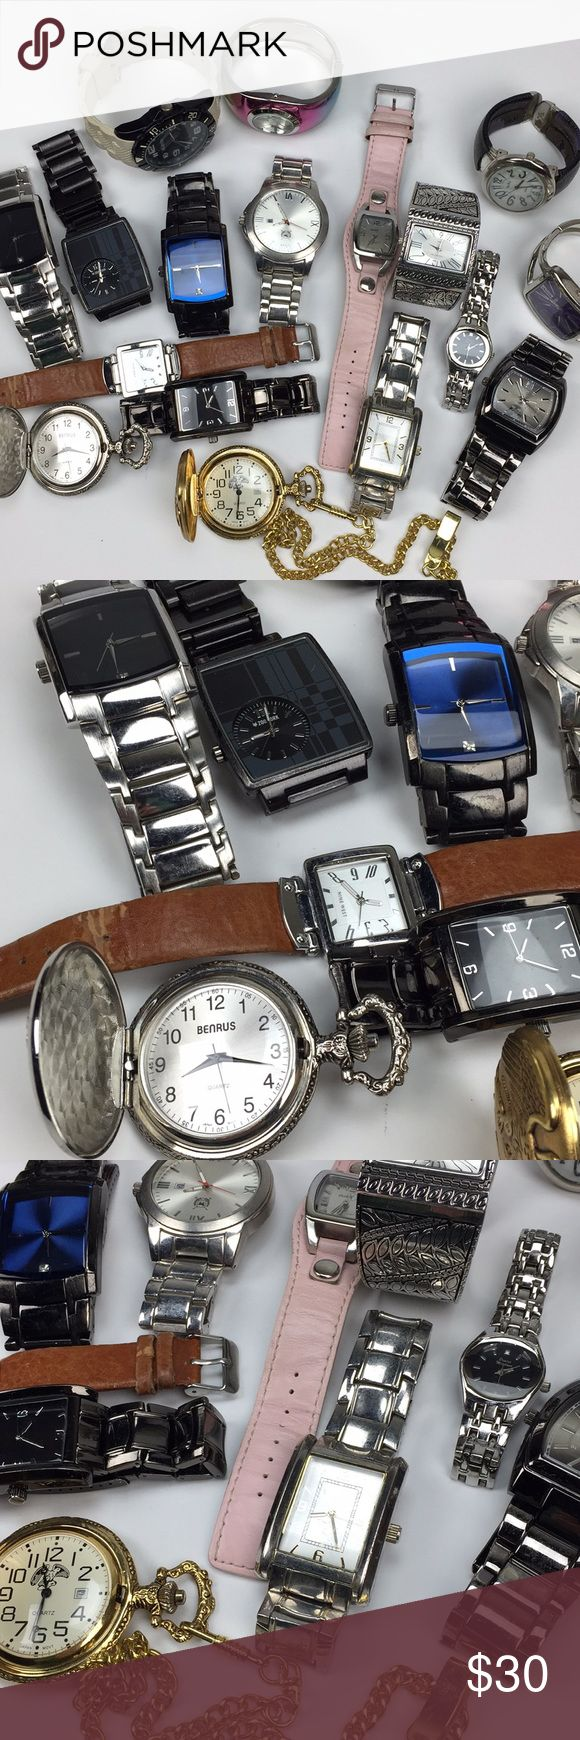 Fashion/Costume Watch Lot - 17 items! Misc watch lot. ALL NEED BATTERIES 3 of the watches have broken bands that need repair. Great for crafts or repair and wear. These are fashion/costume watches Various brands... Zoo York, Nine West, Unlisted, Benrus, Bongo, Allude, Studio Y... some have no brand.  You get everything shown. Ready to ship. Various Other